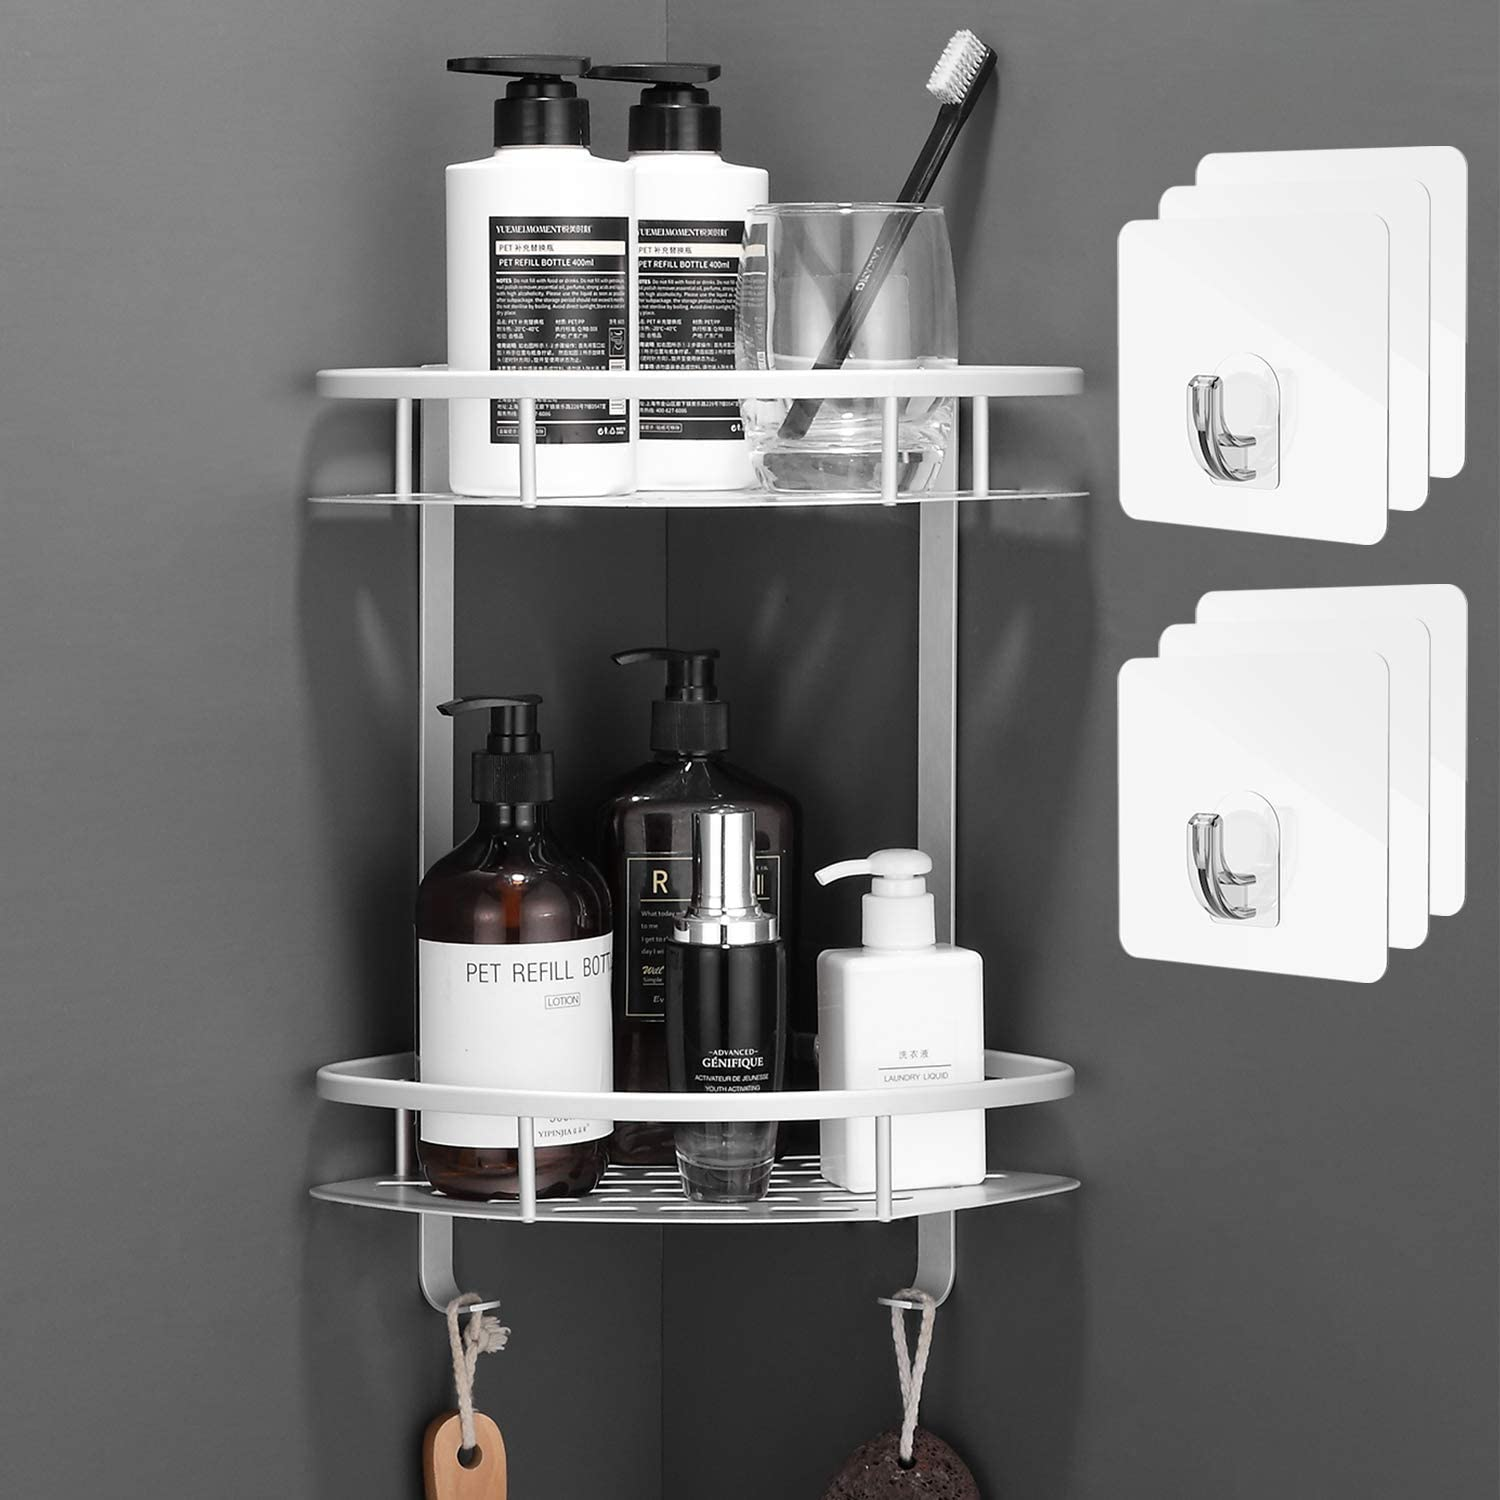 Amazon Com Flowmist 2 Tiers Corner Shower Caddy Shower Organizer Wall Mounted Aluminum Shower Shelf With Adhesive No Drilling Storage Rack For Toilet Shampoo Dorm And Kitchen Home Kitchen